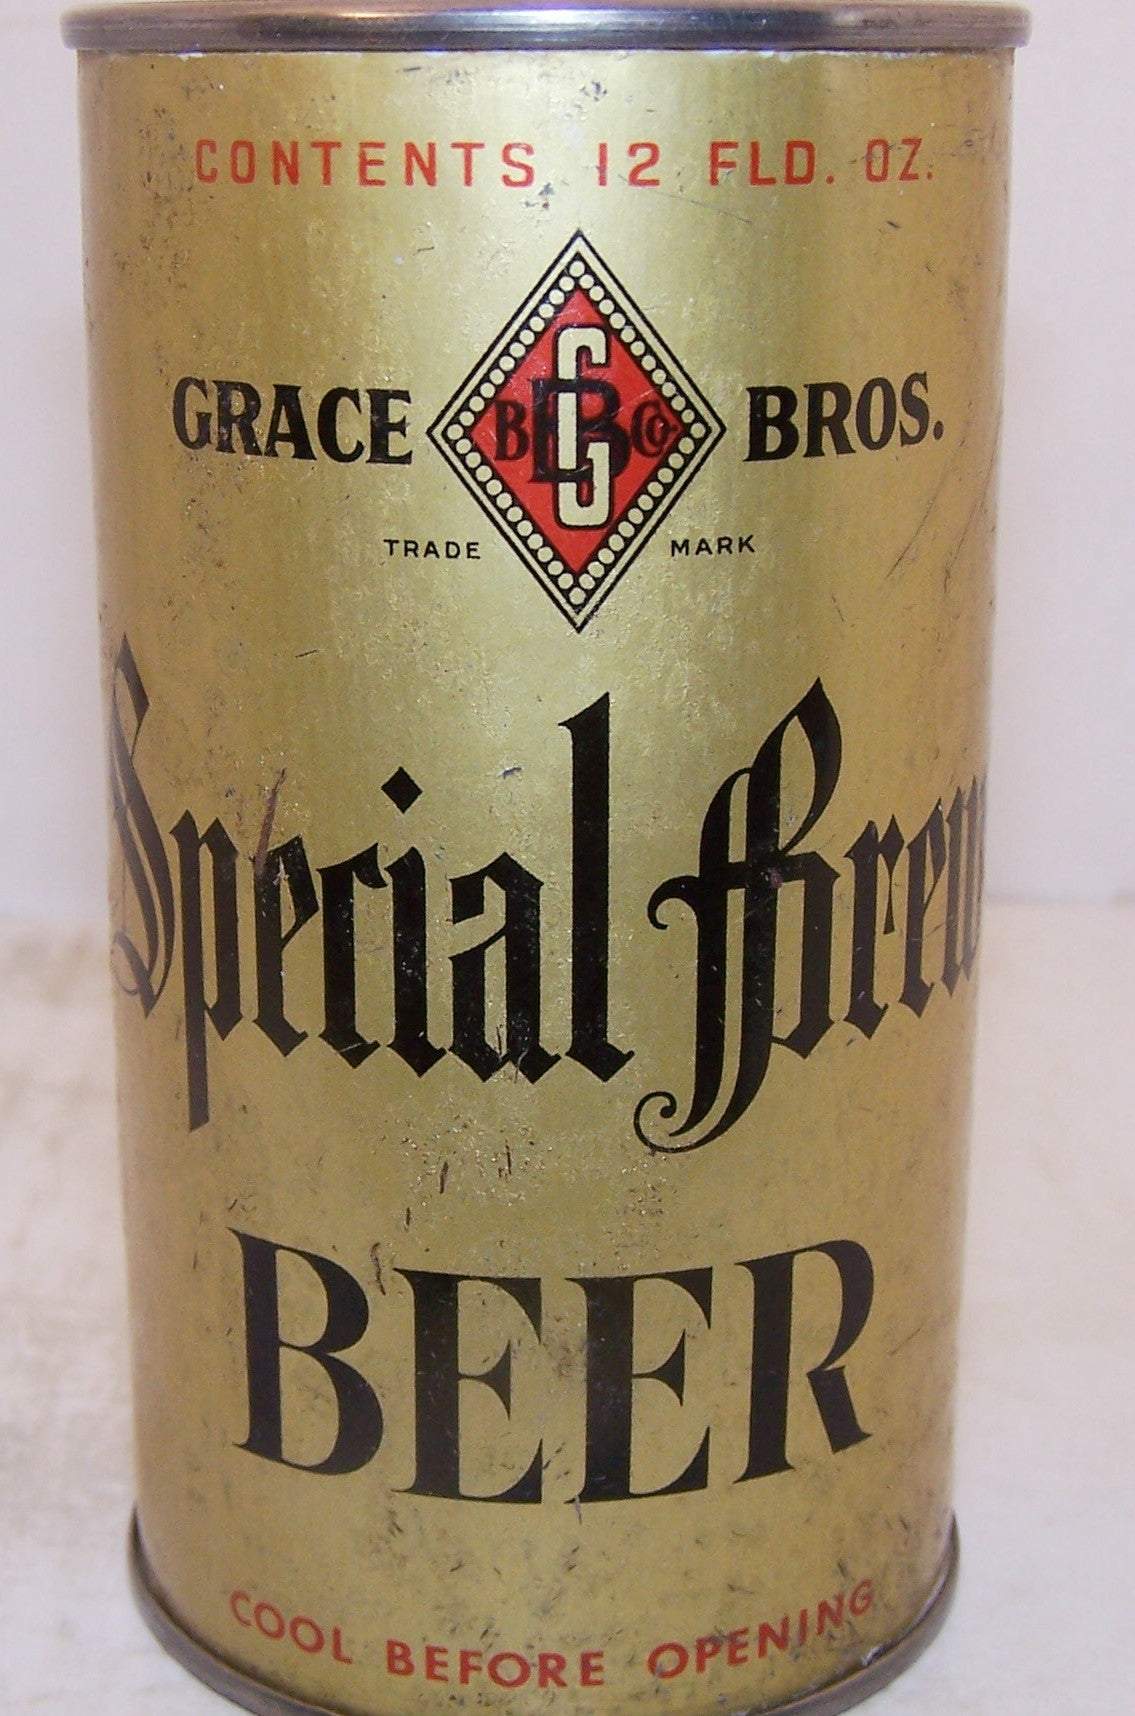 Special Brew Beer, Lilek page # 769, Grade 1-/2+ Sold 4/24/15